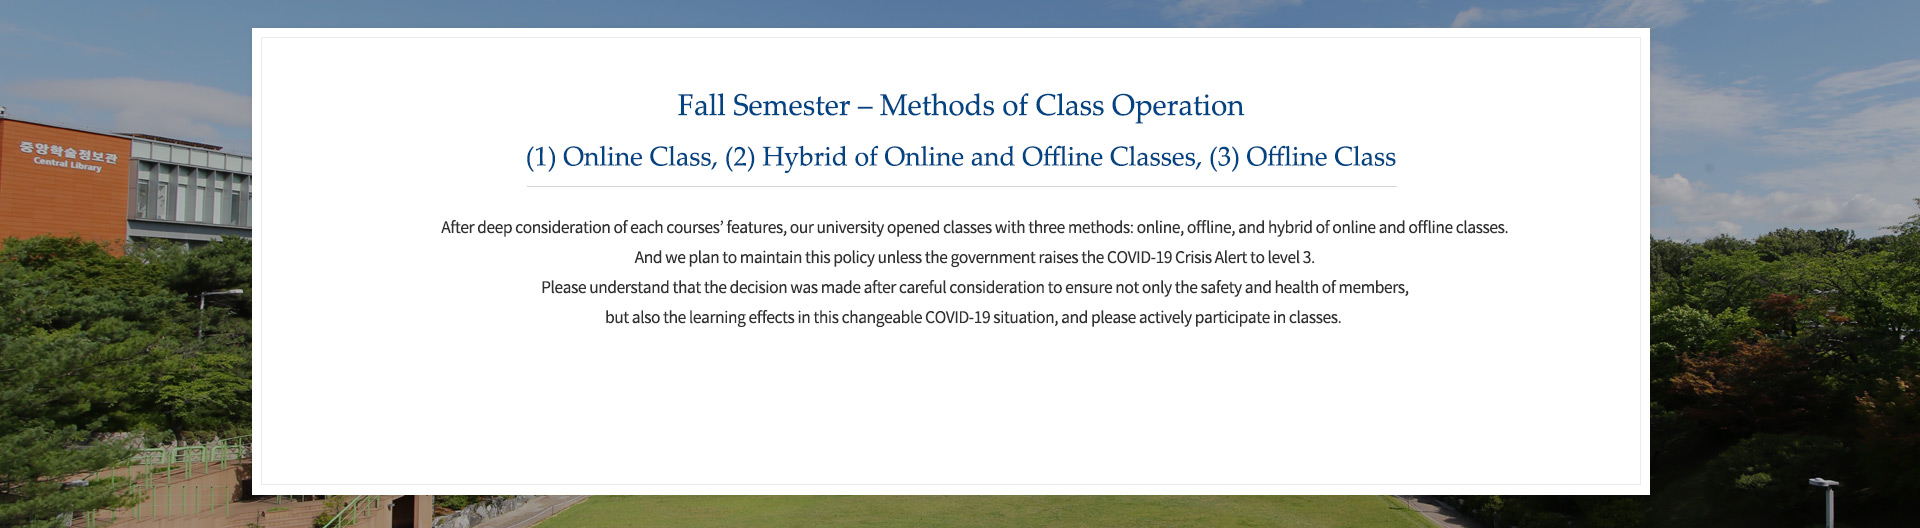 Fall Semester – Methods of Class Operation